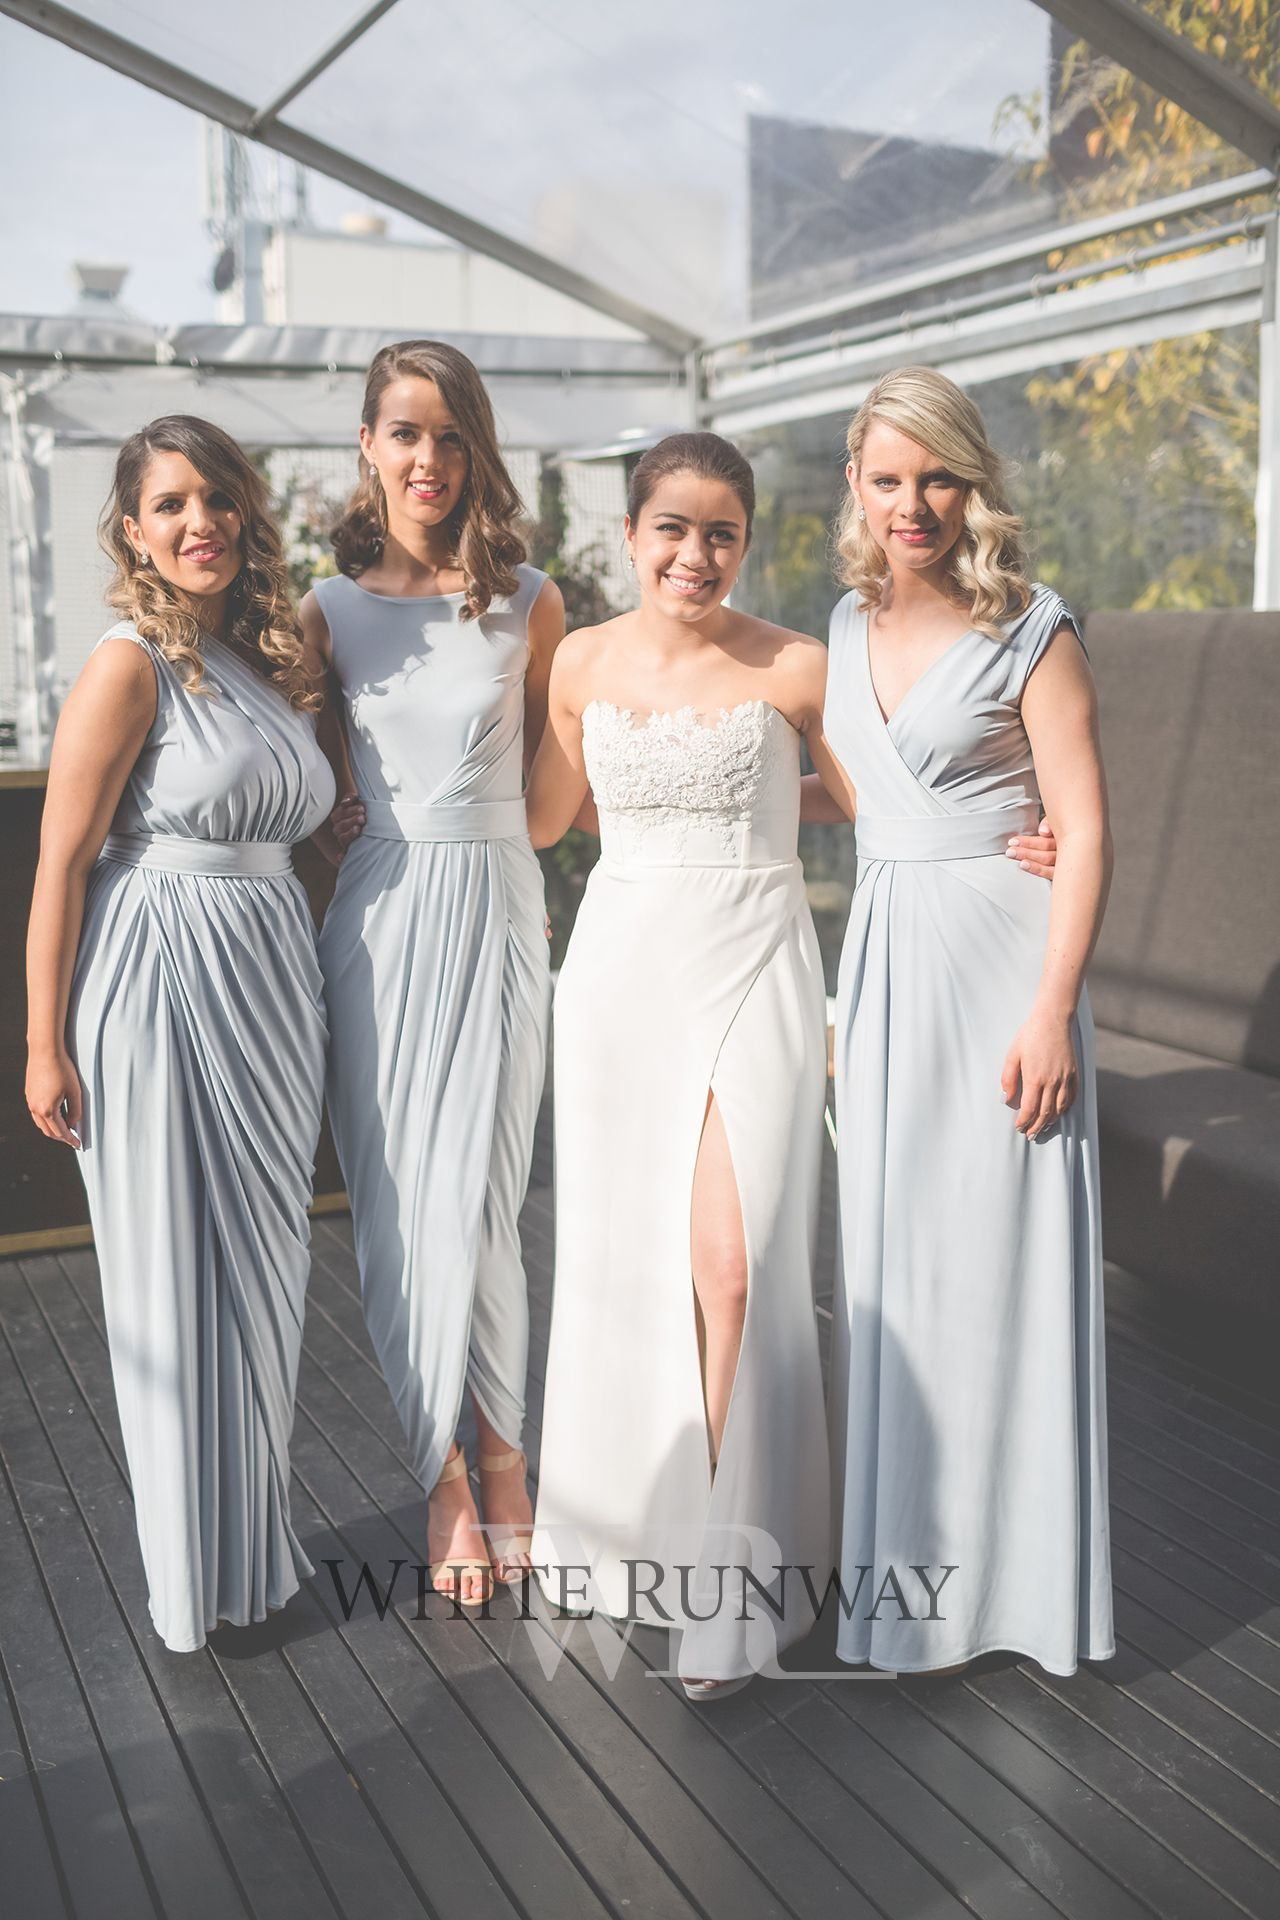 Jm351 watermarked juju bees pinterest bridal dresses our gorgeous bride megan chose three different pia gladys perey styles for her bridesmaids the girls looked stunning in the ingrid haily bessy dresses ombrellifo Gallery